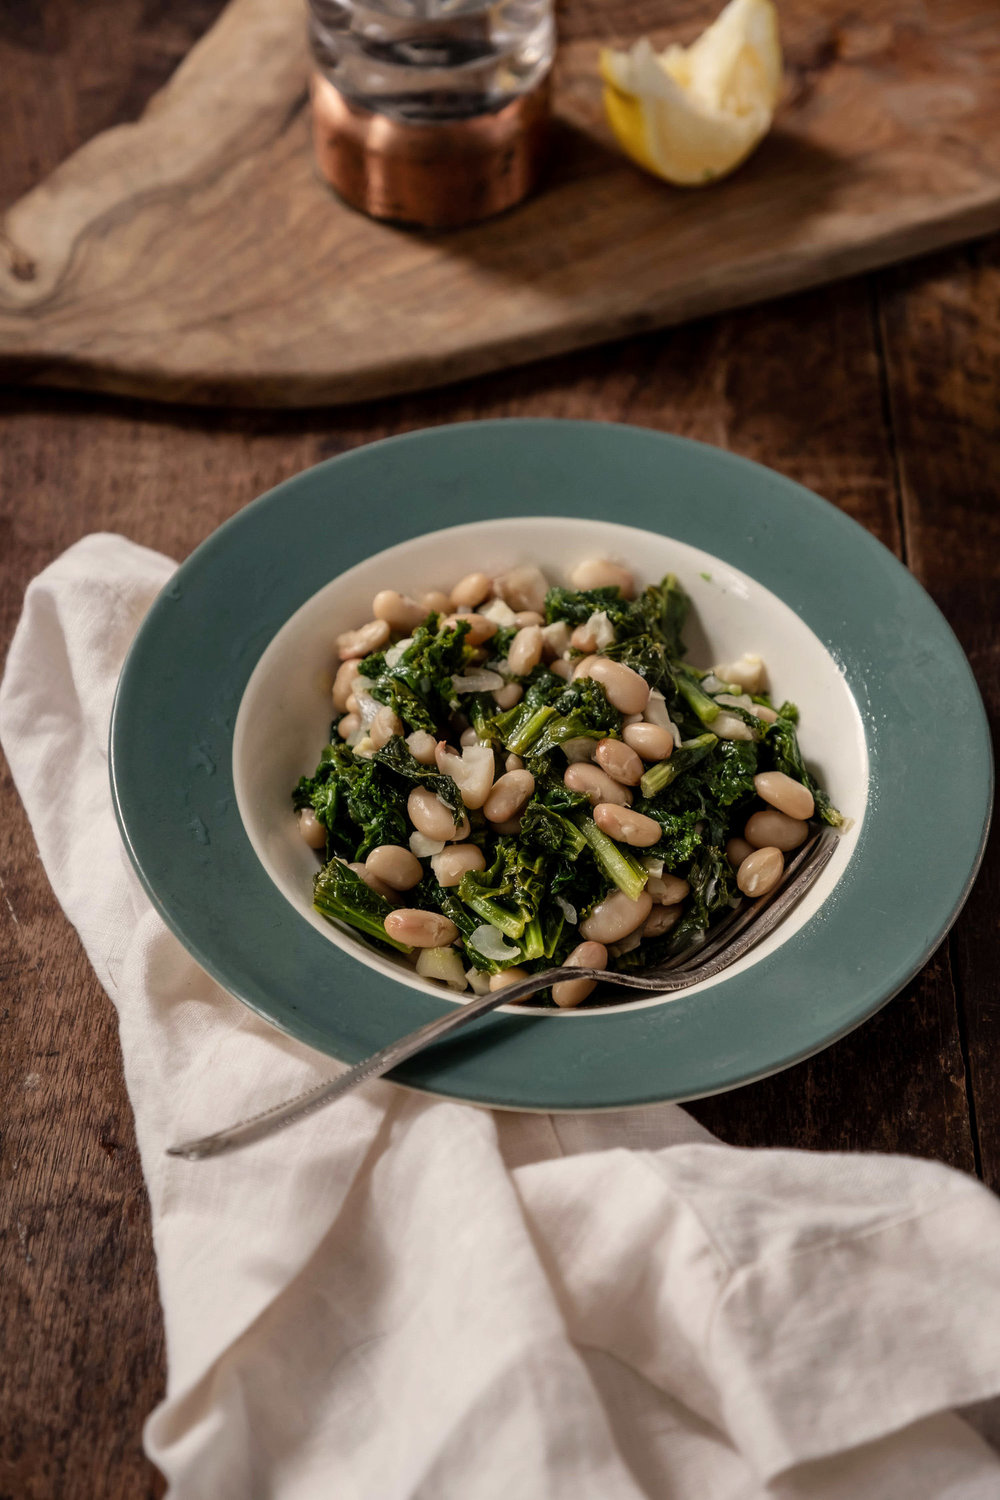 ROSE & IVY Journal Get to Know Your Greens Mustard Greens + Lemony Mustard Greens and White Beans